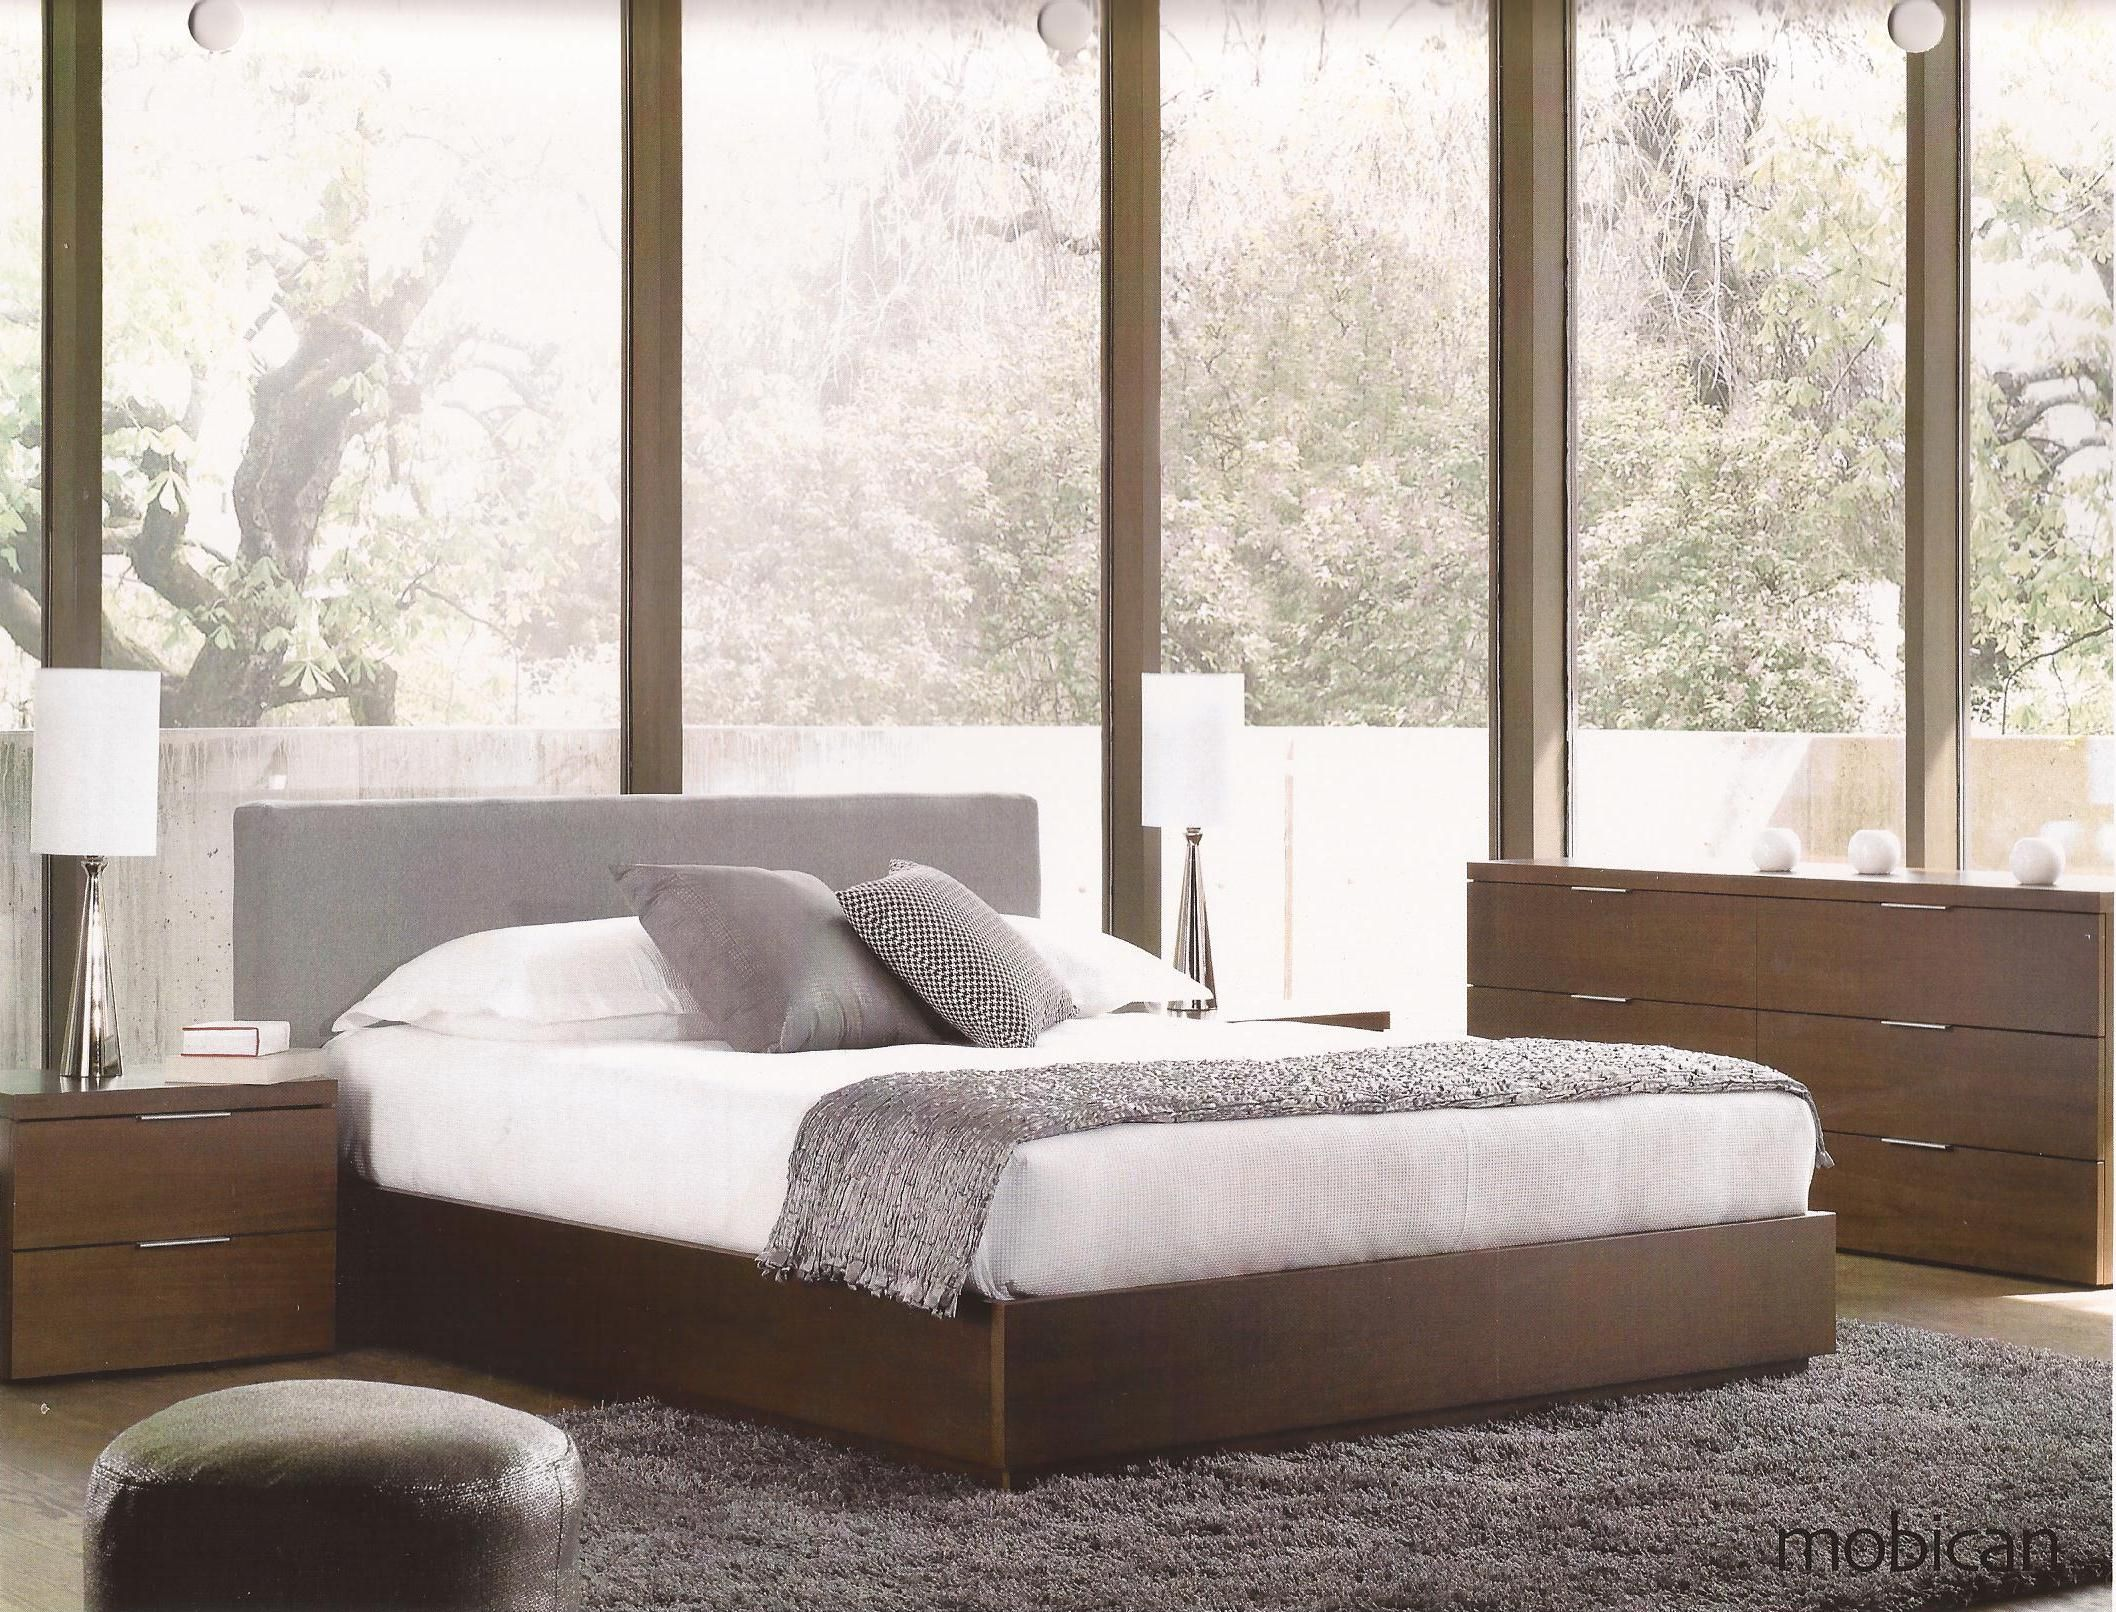 Bedroom. Plain Rectangle Upholstered Headboard Combined With Platform Bed Fur Rug And Bay Window